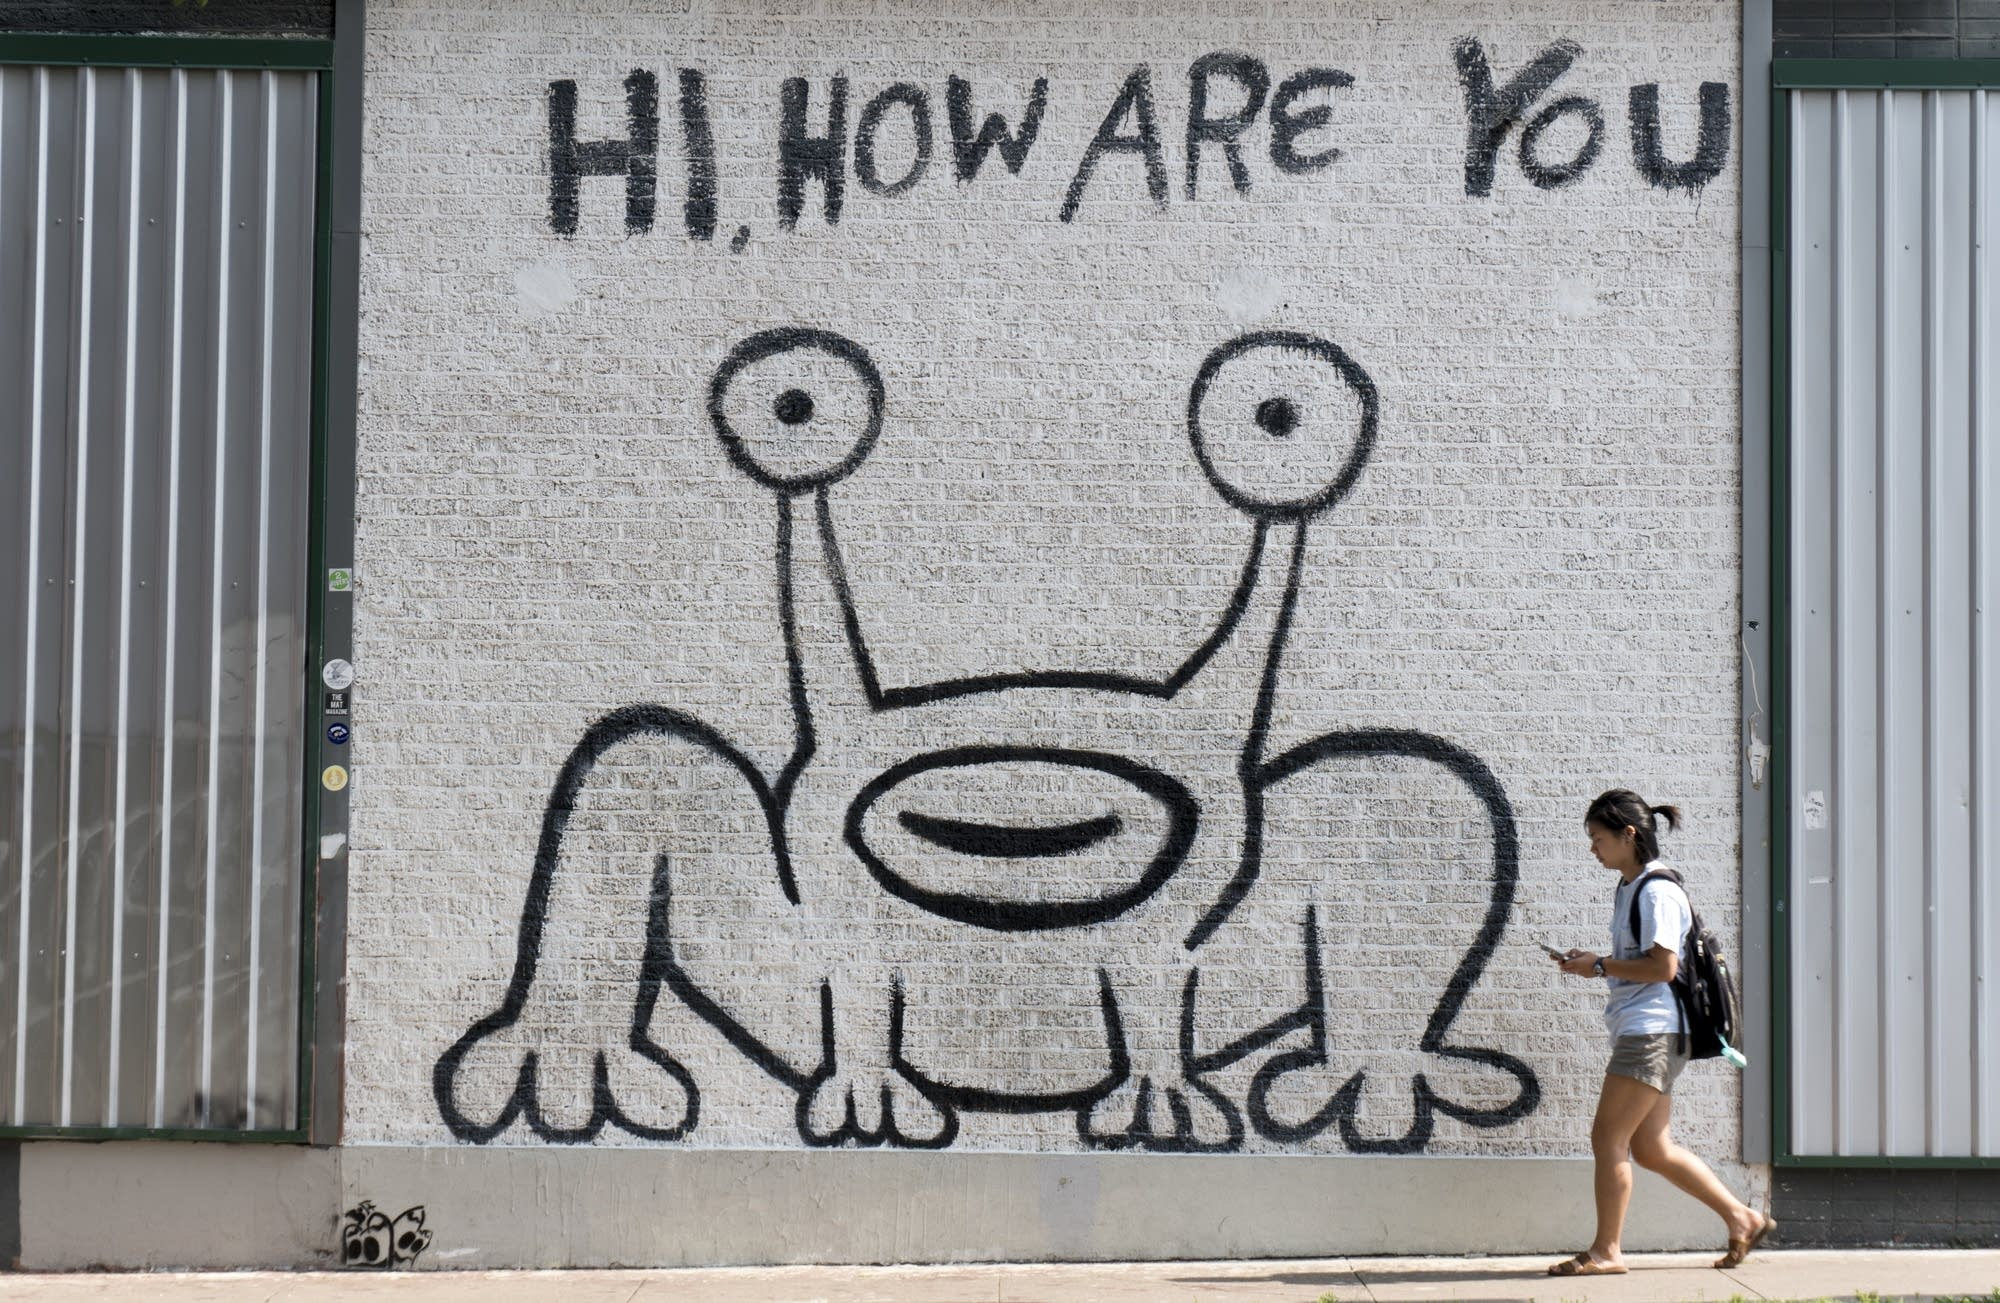 Daniel Johnston's 'Hi, How Are You' mural in Austin, Texas